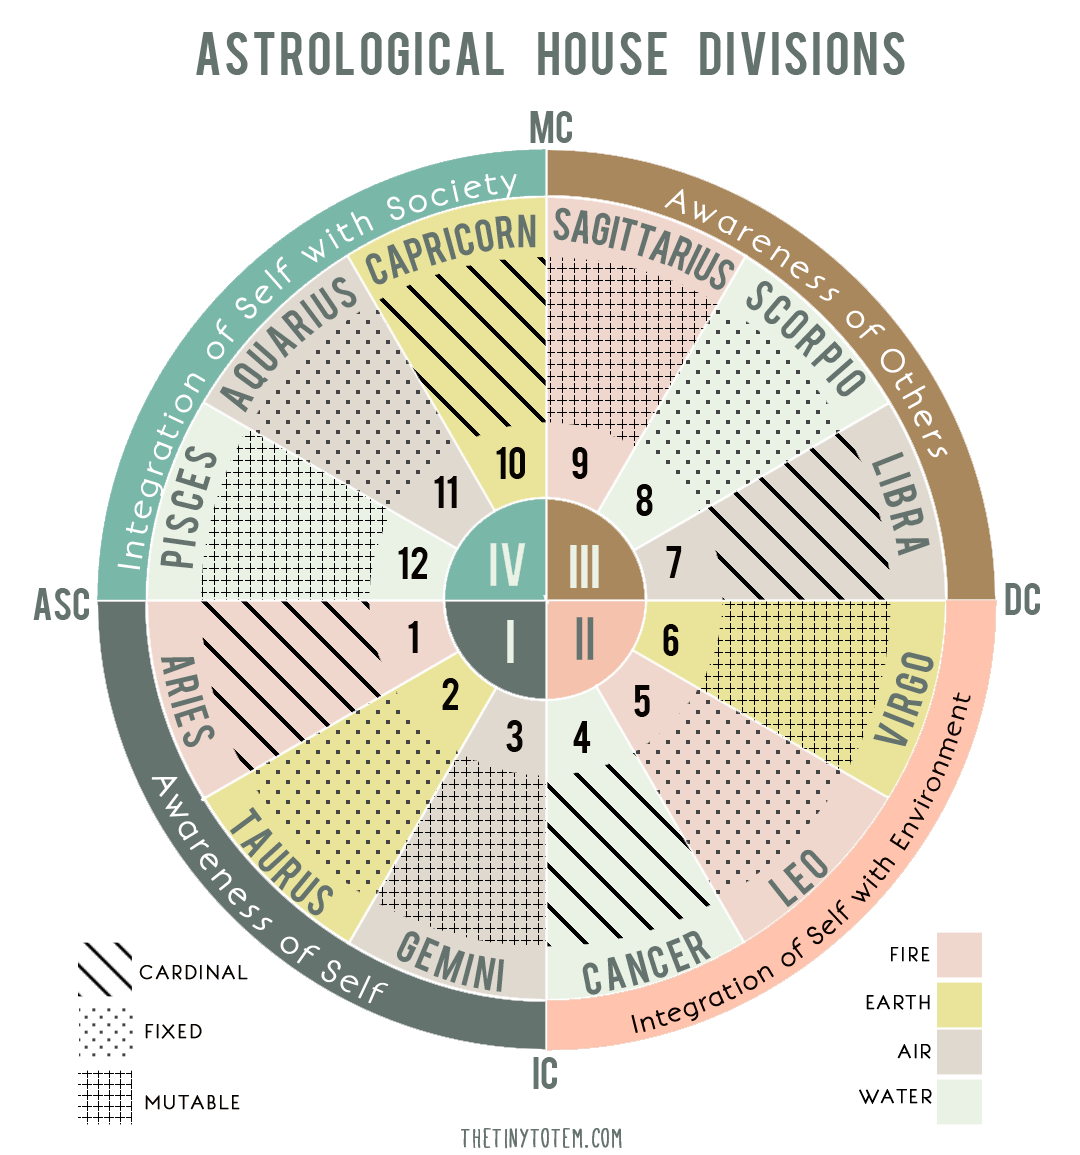 Astrology Arena: The Activities and Events of the Twelve